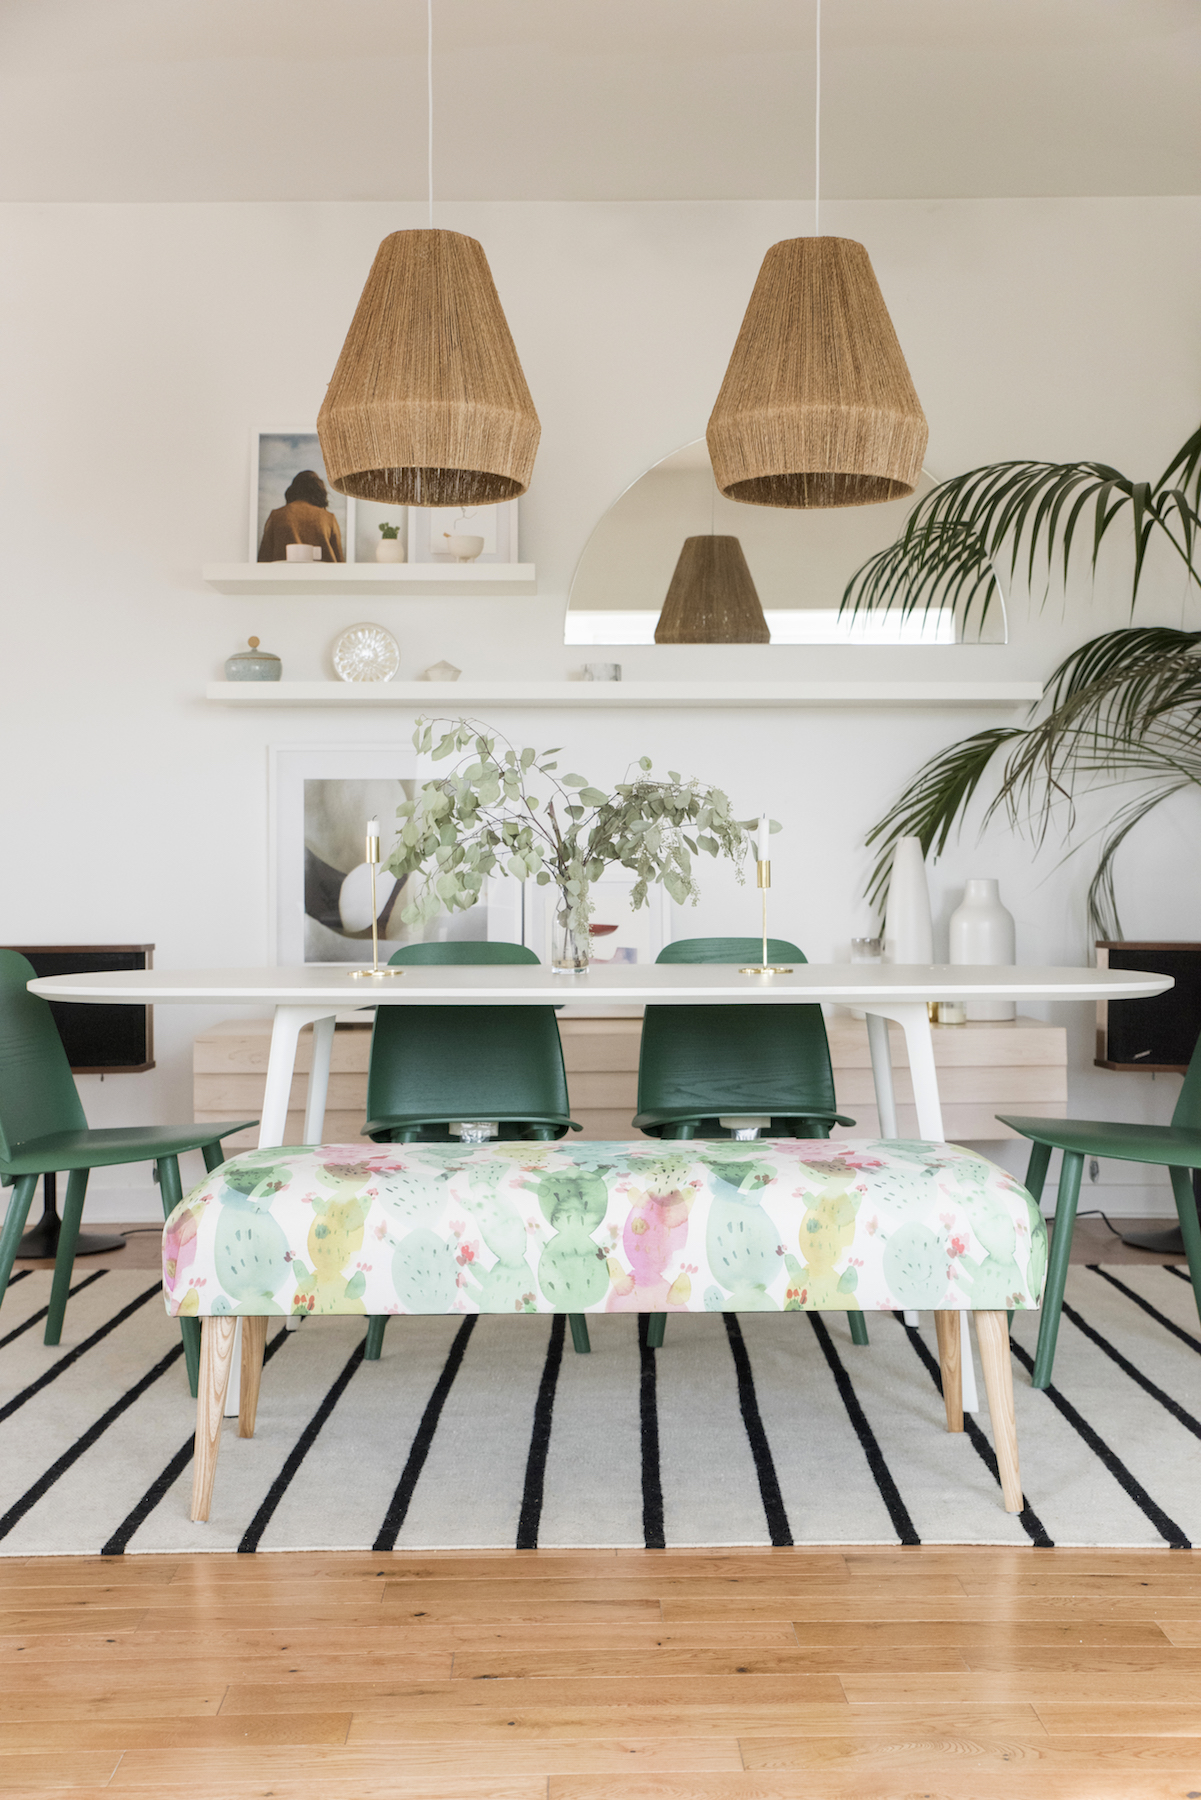 Designlovefest Dining Room With Colorful Bench and Table and Plants